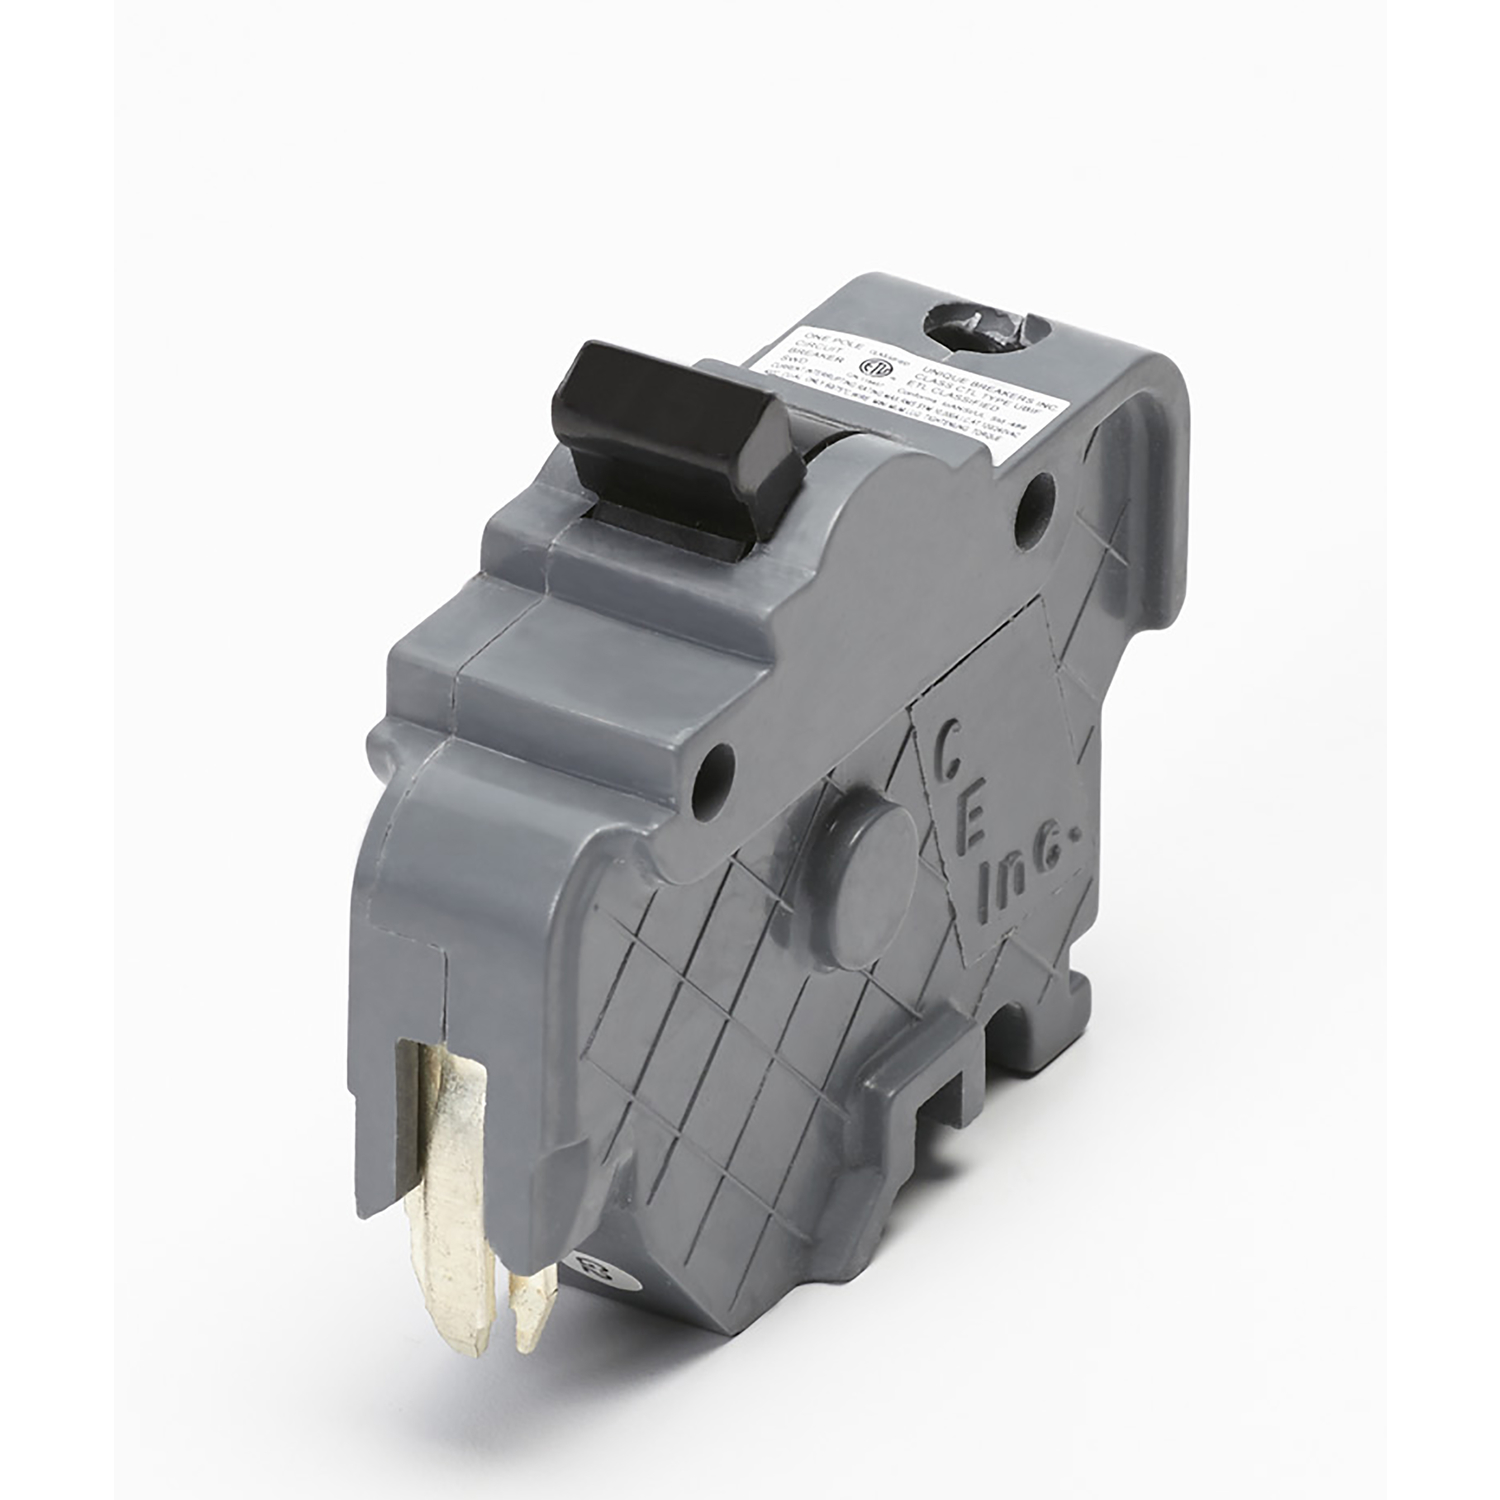 small resolution of federal pacific 15 amps standard single pole circuit breaker ace hardware